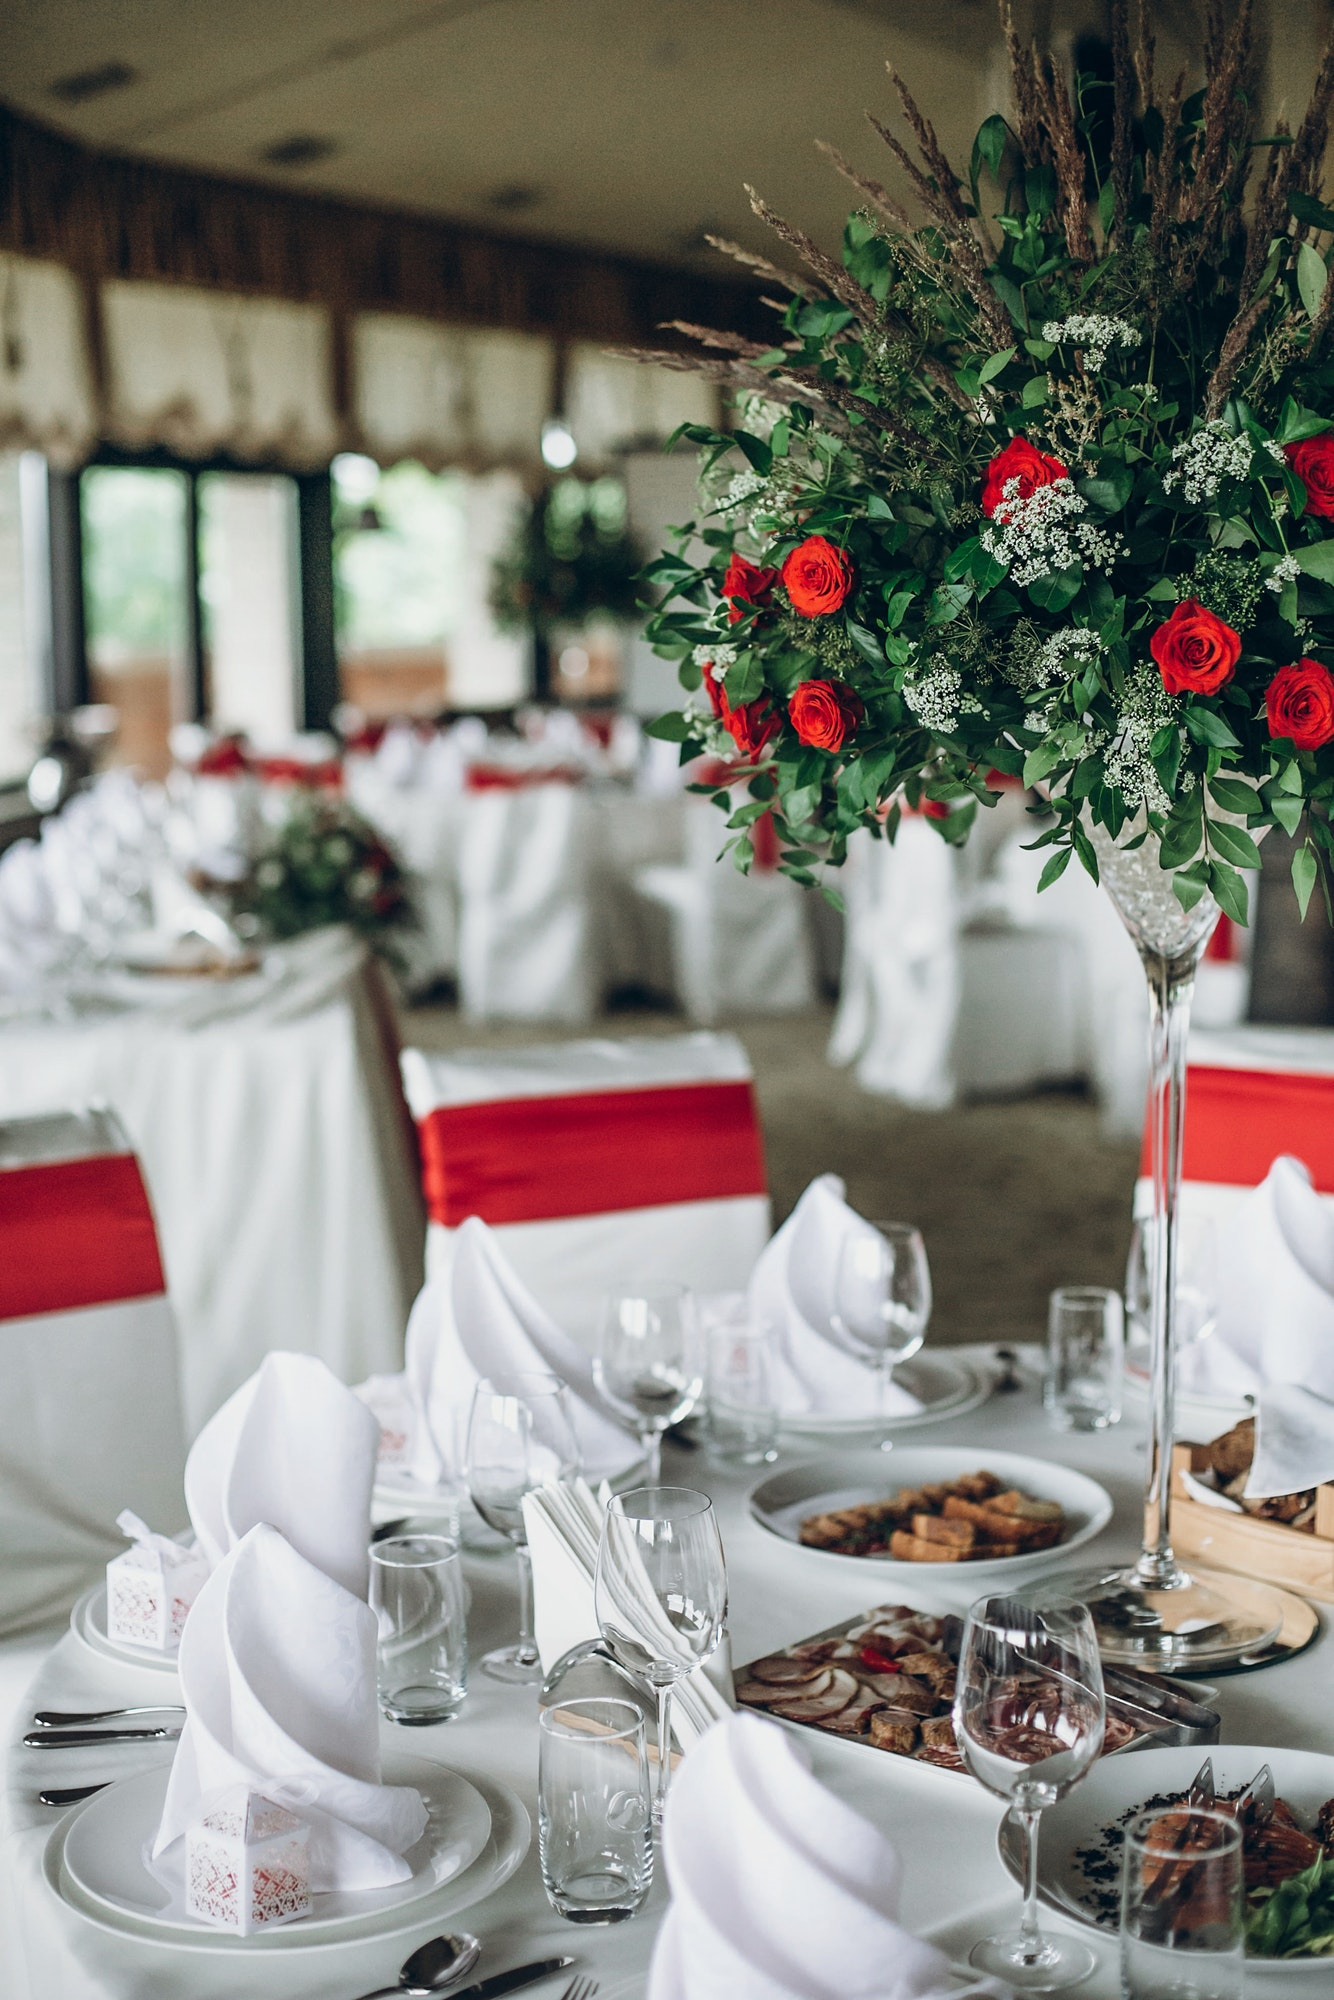 Wedding table with food, silver cutlery, empty glasses, white silk chairs and napkins